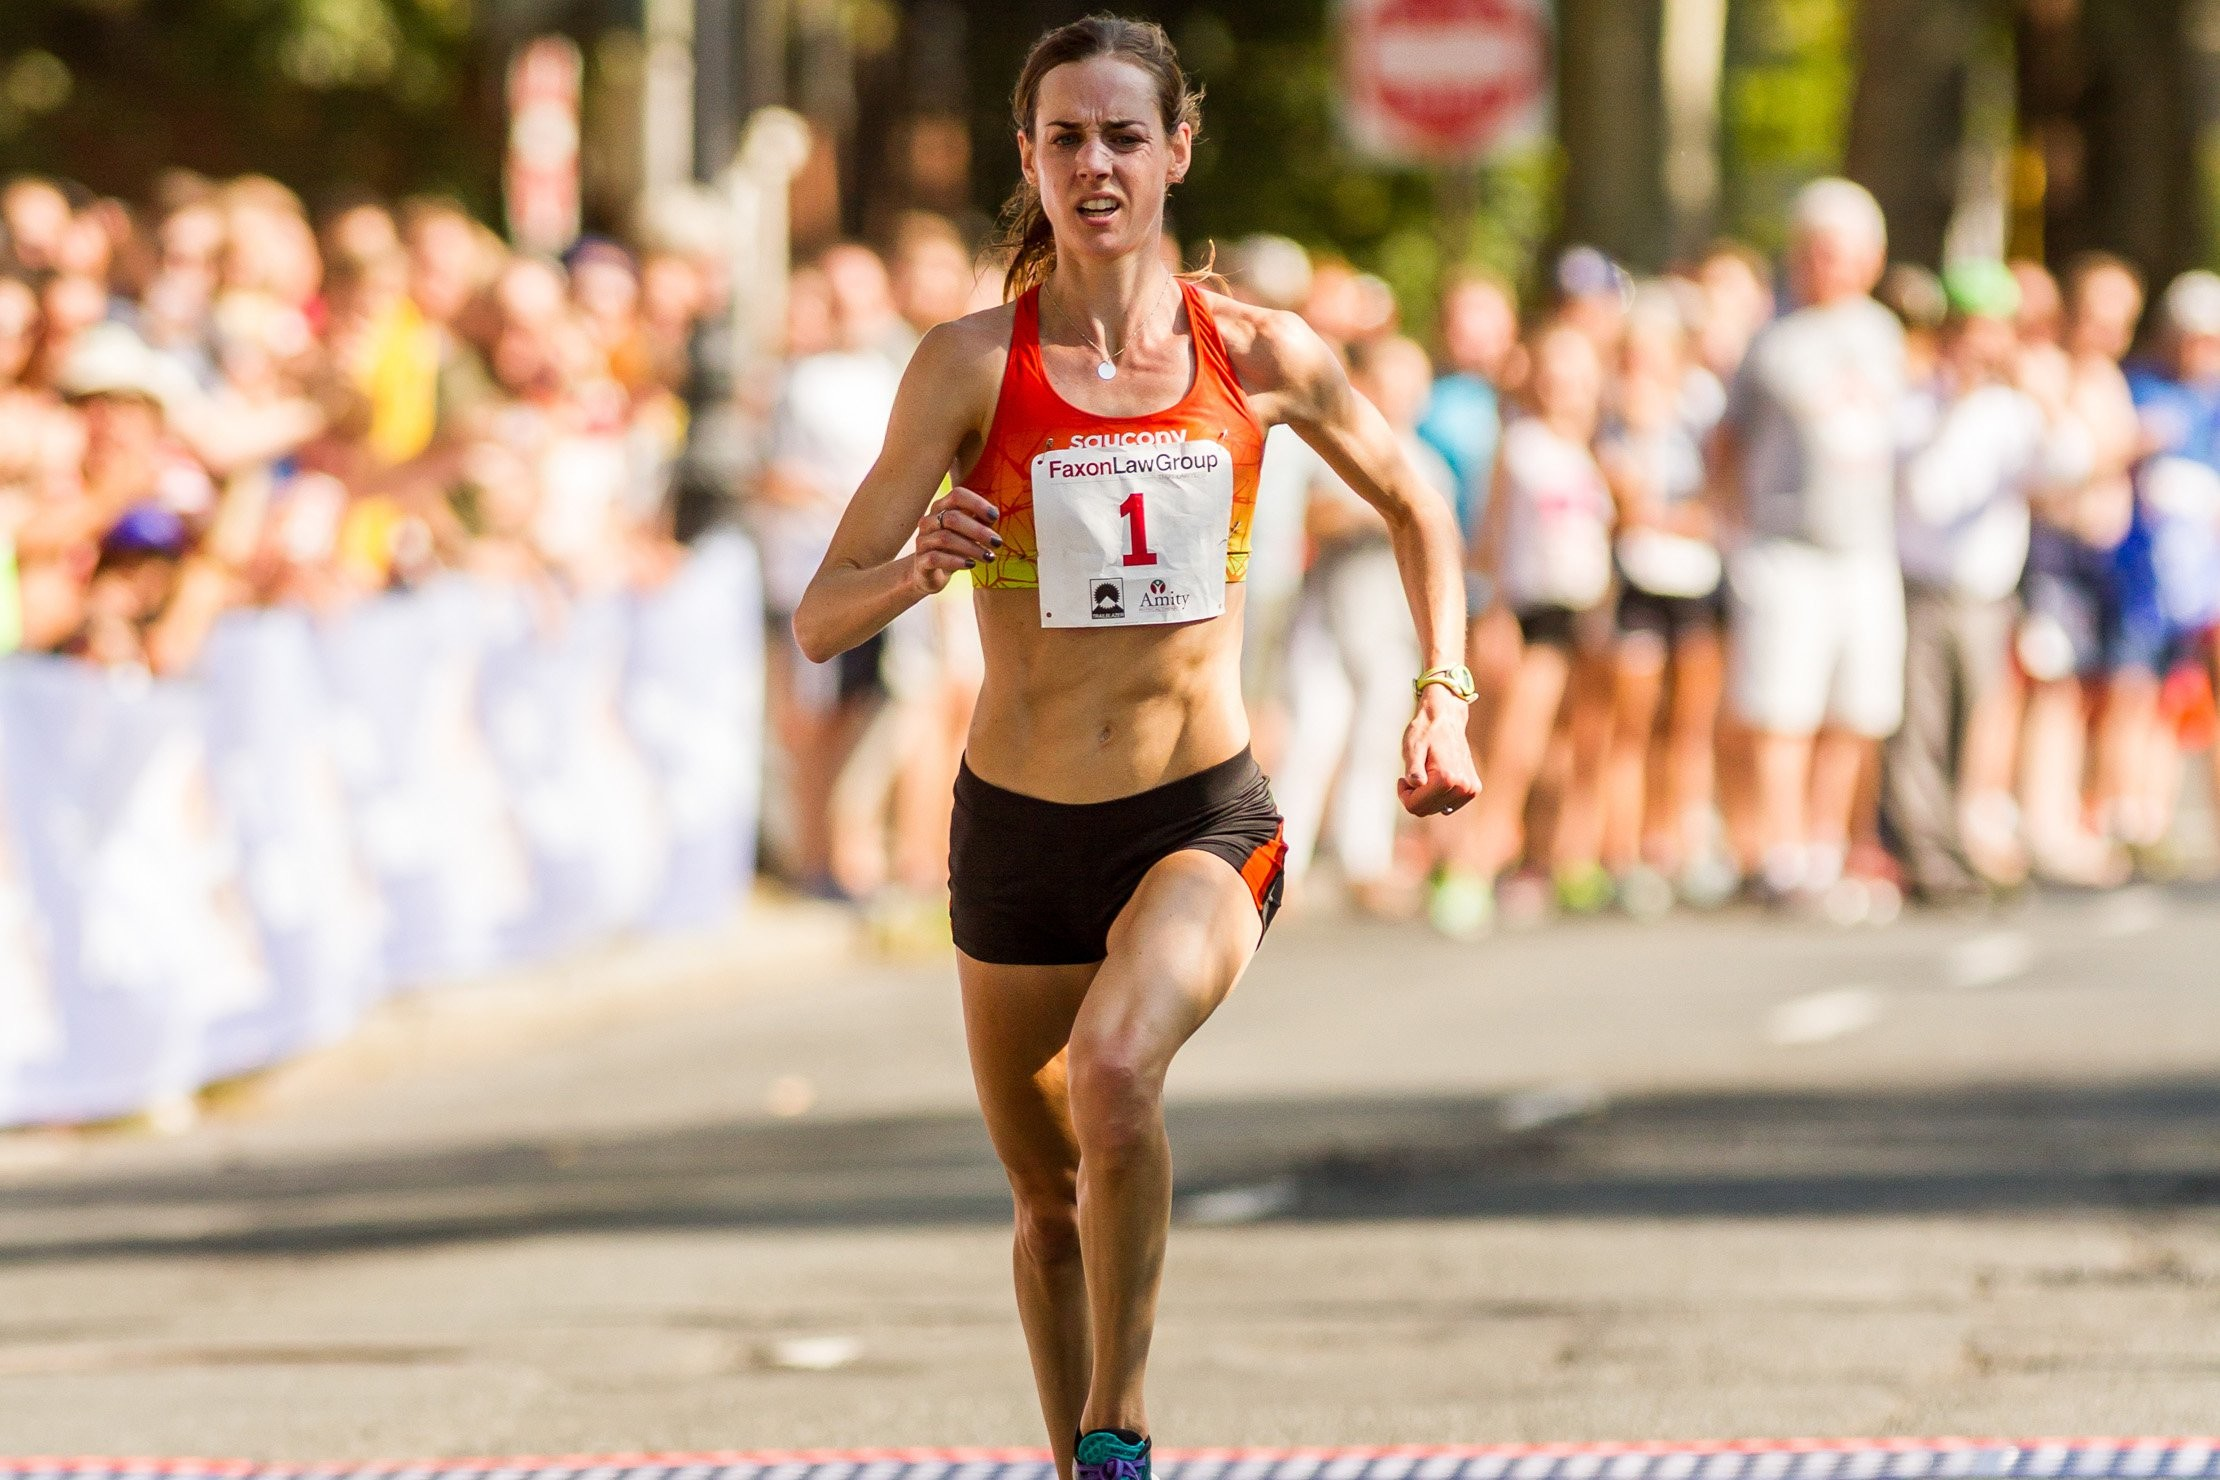 Molly Huddle Has Only Run One Marathon but...